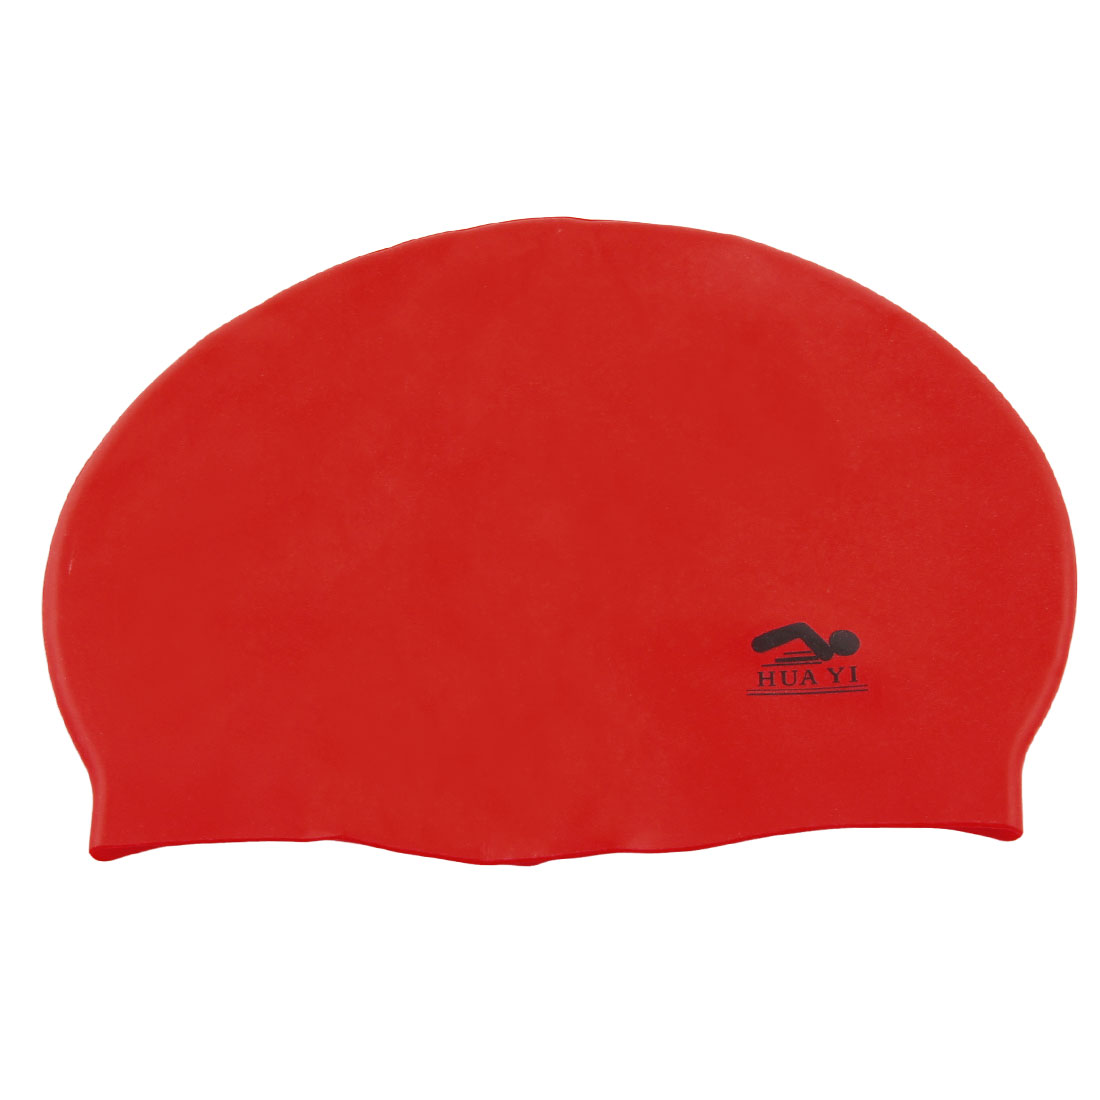 Red Soft Silicone Inside Grains Design Swimming Cap for Adult